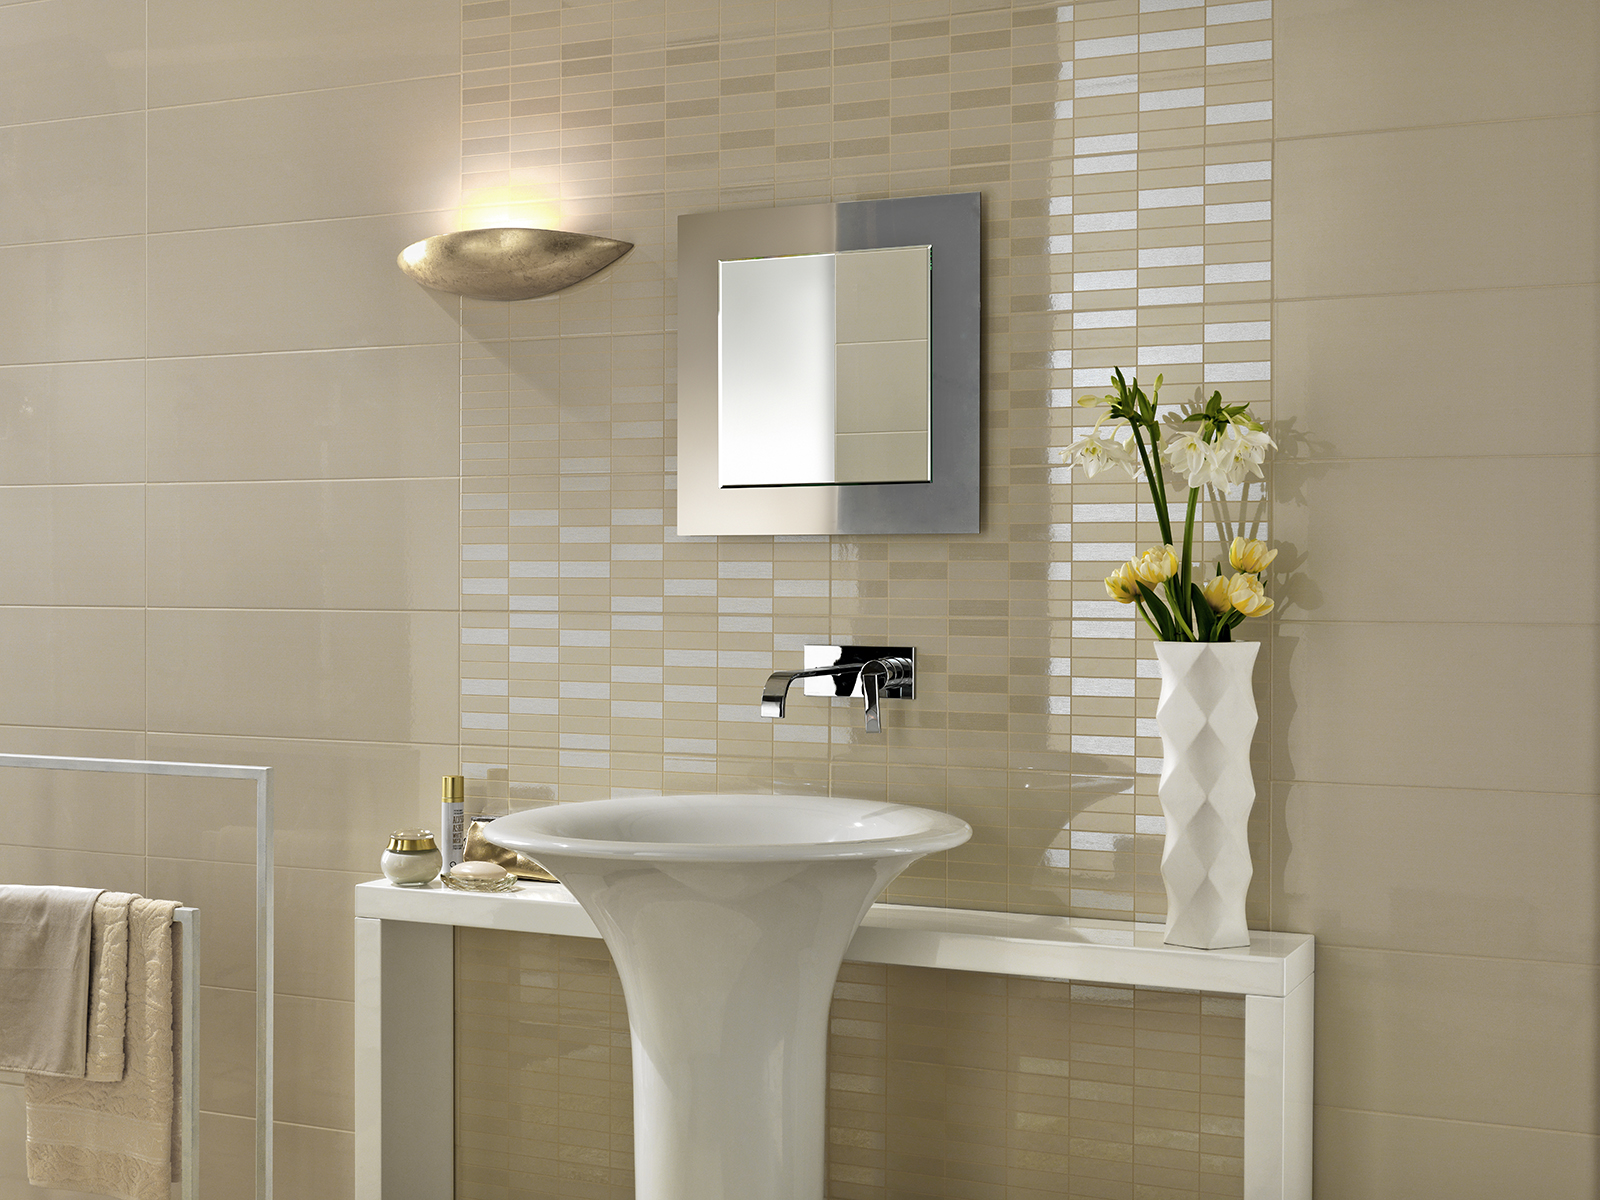 Attractive Home Depot Showroom Bathroom #1: Colourline_24.jpg